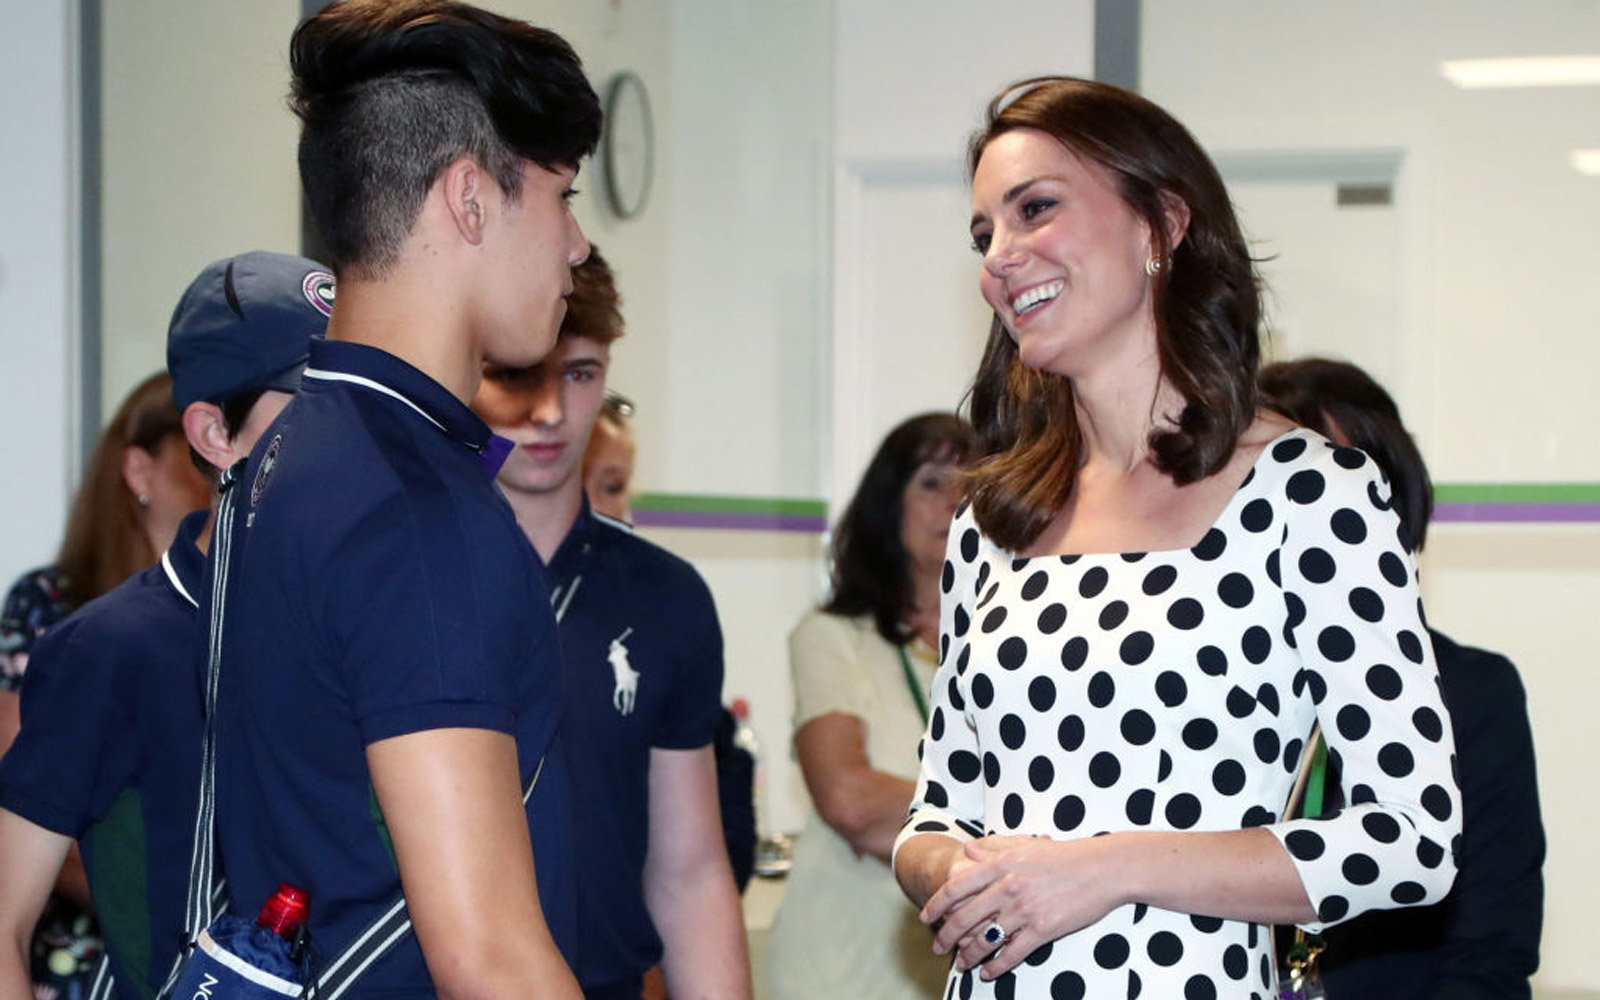 LONDON, UNITED KINGDOM - JULY 3:  Catherine, Duchess of Cambridge, Patron of the All England Lawn Tennis and Croquet Club (AELTC) as she meets ball boys and girls on day one of the Wimbledon Championships at The All England Lawn Tennis and Croquet Club, W